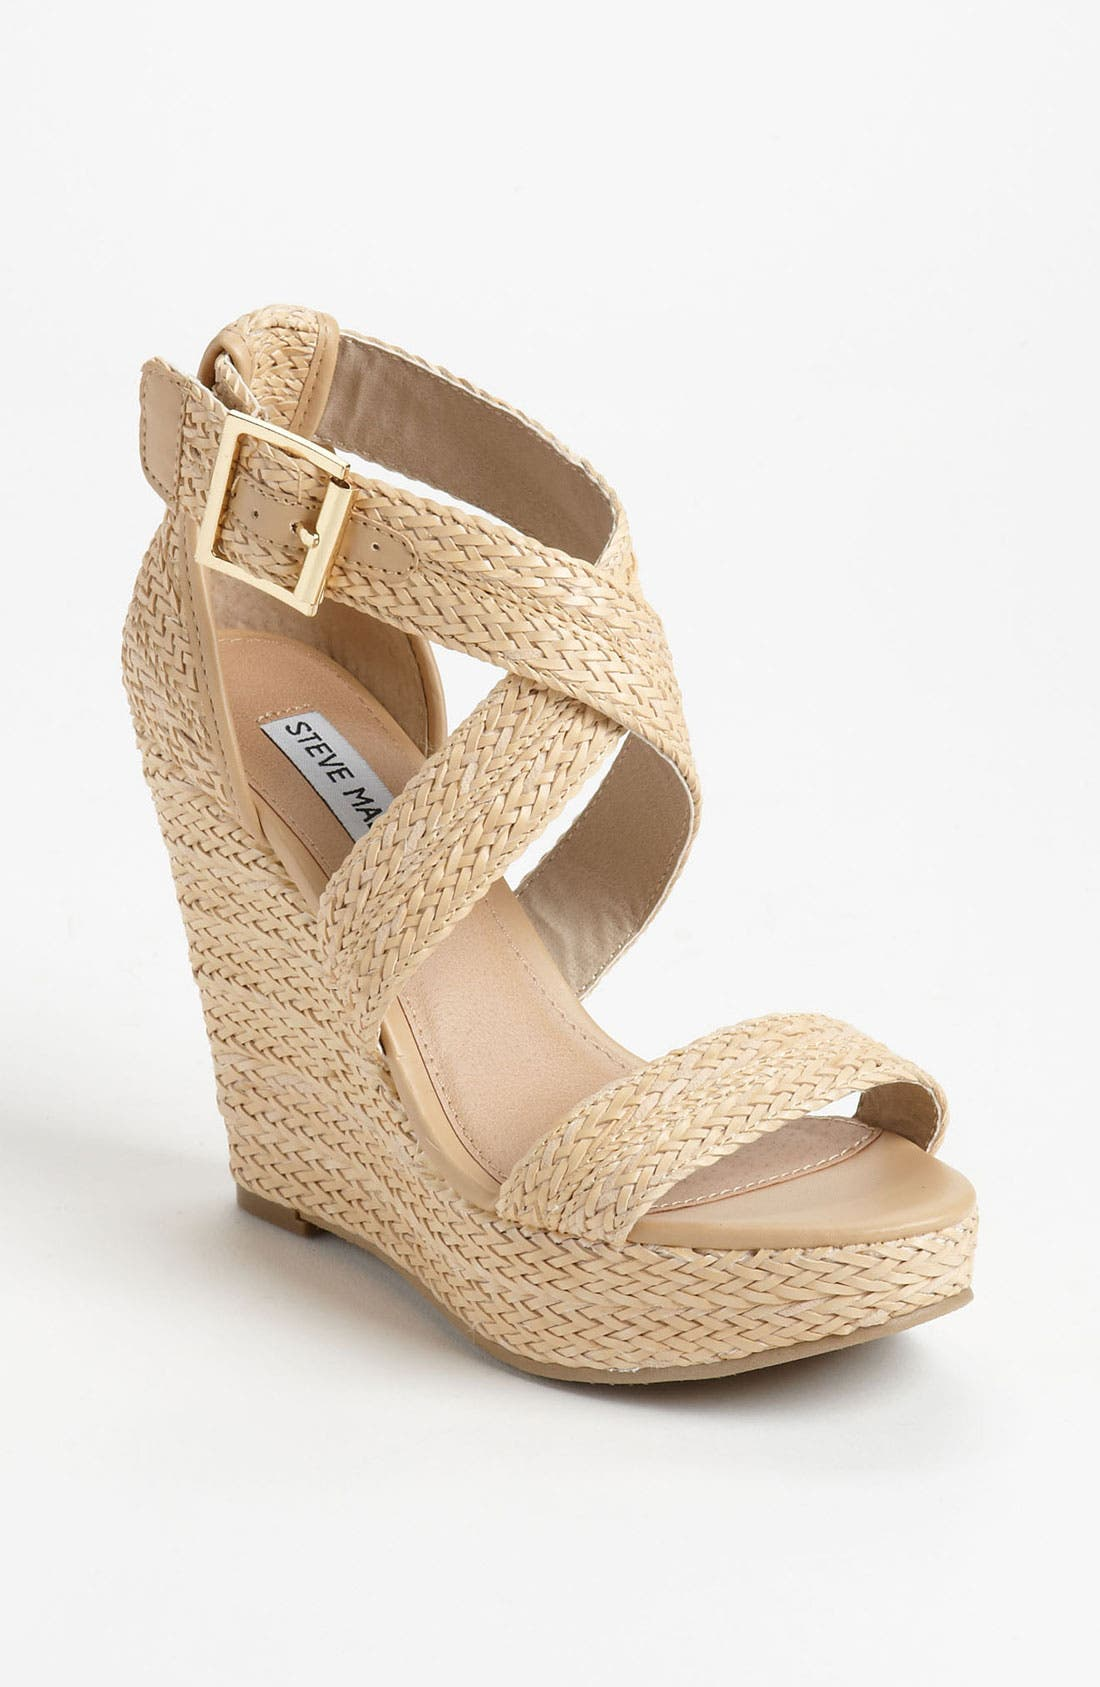 Main Image - Steve Madden 'Haywire' Wedge Sandal